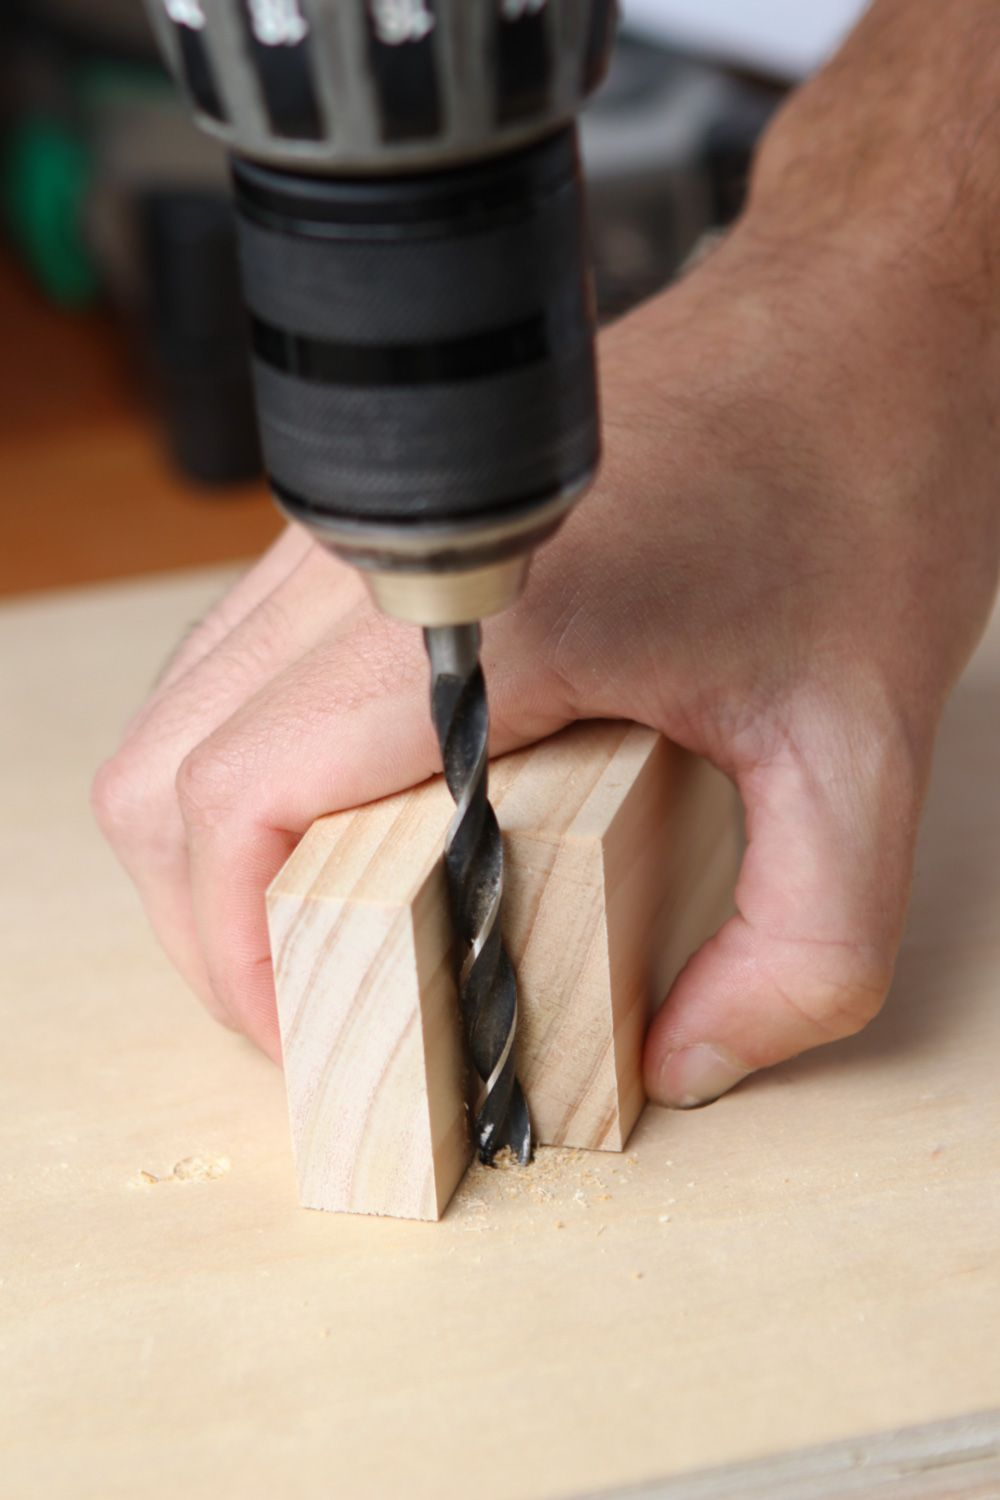 How To Cut A Square Hole In Wood By Hand